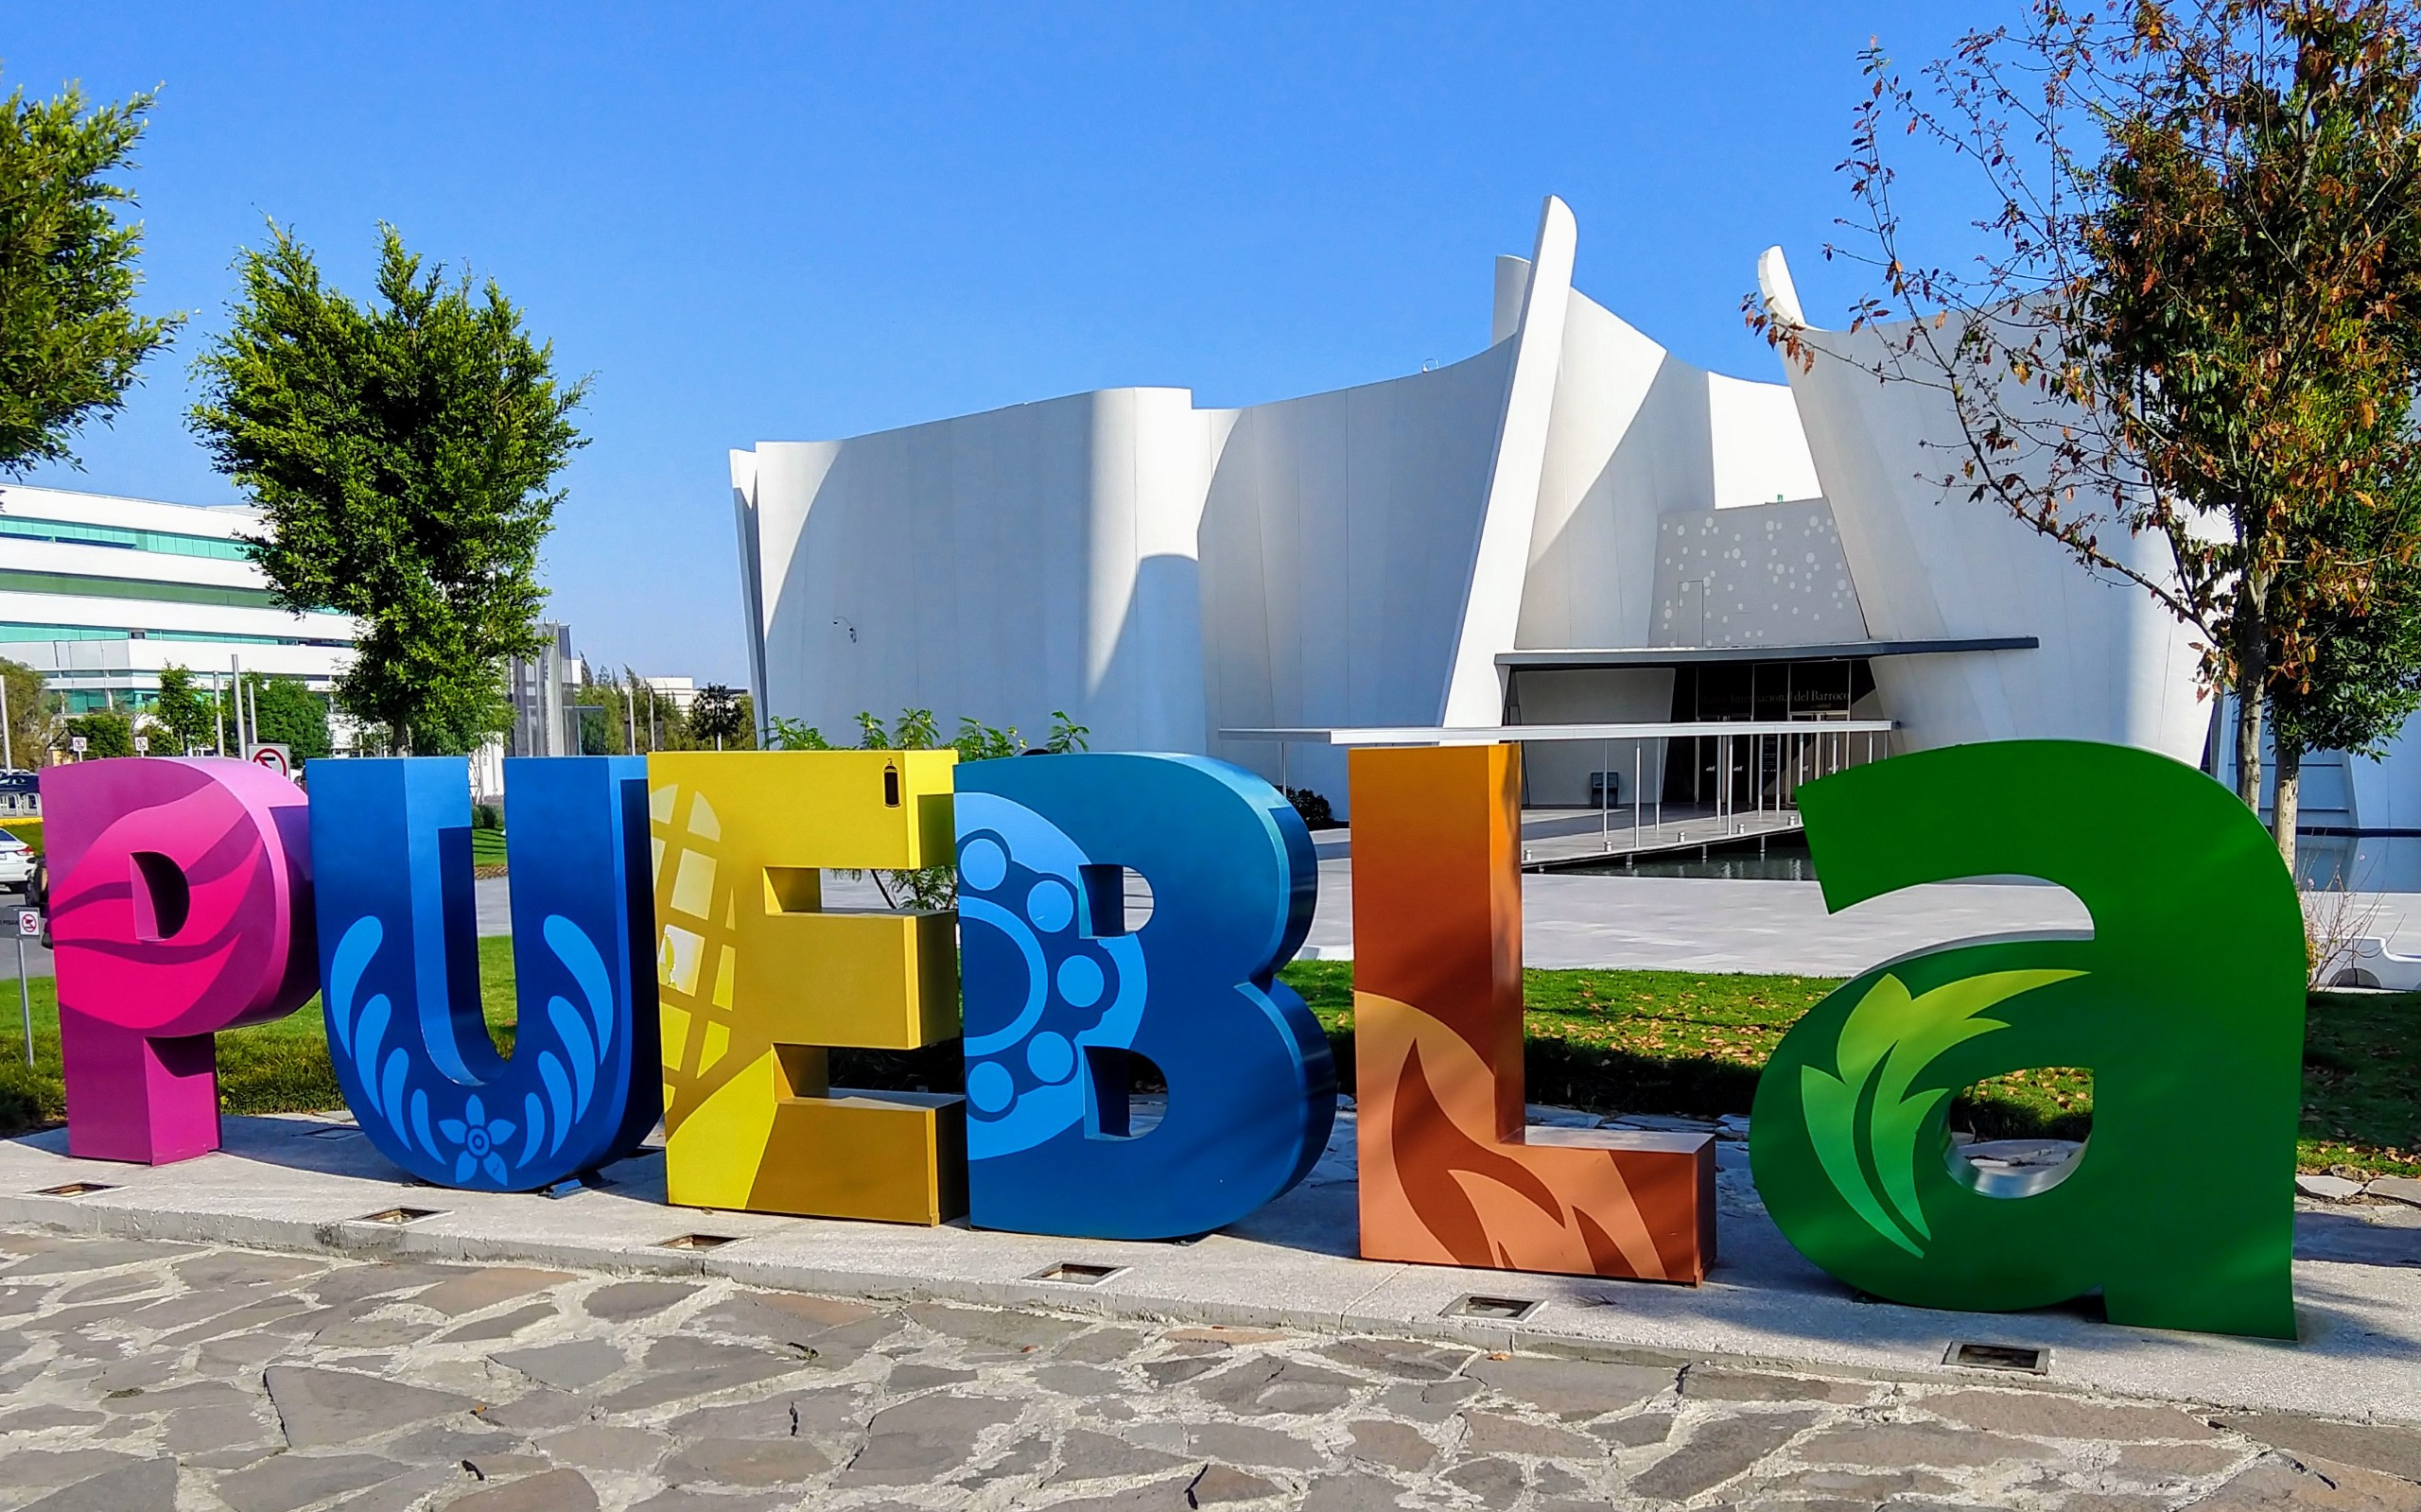 Colorful letters mounted to the ground spelling puebla with a white museum in the background with tall, white, curving walls